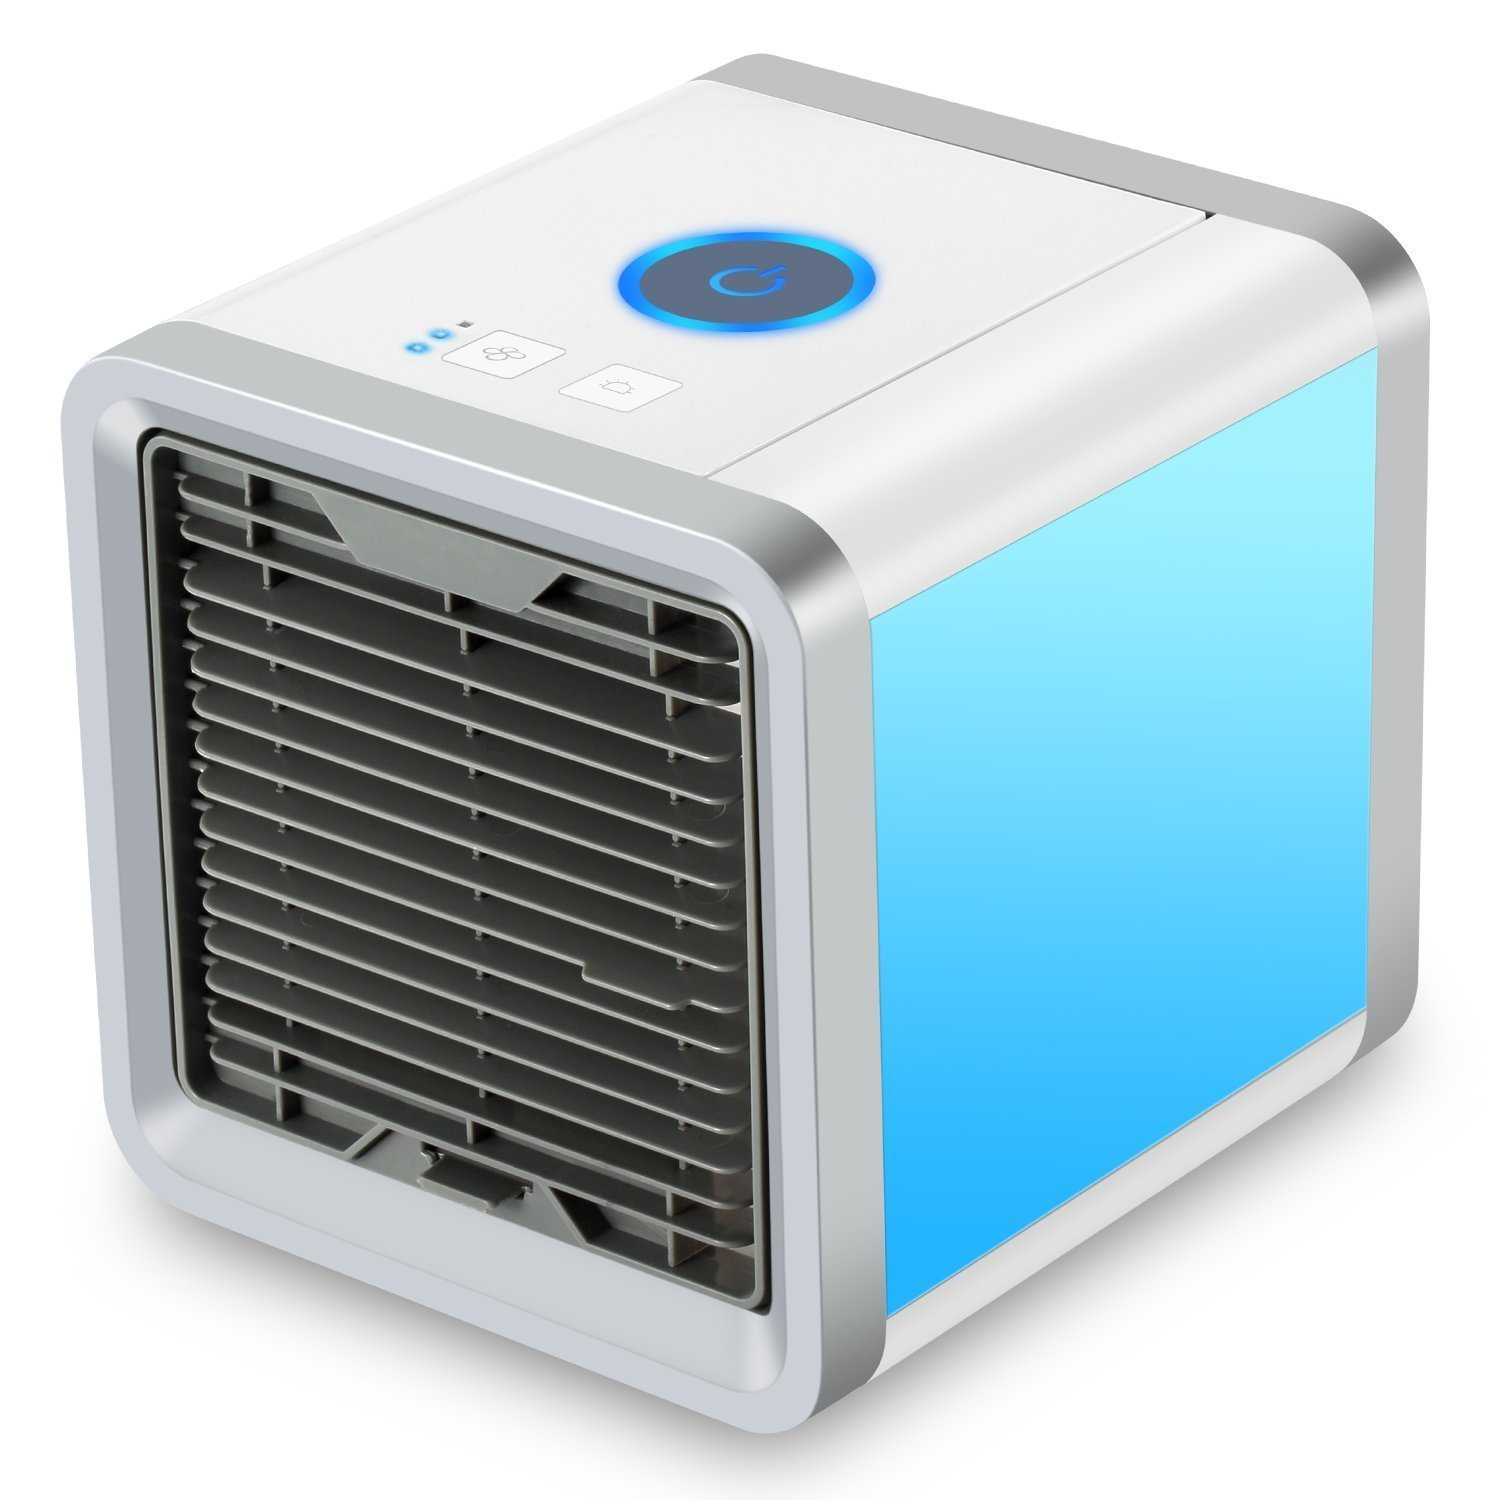 Portable Air Conditioner, Arctic Air Personal Space Cooler,Personal Space Air Cooler, Desktop Cooling Fan,Humidifier, Purifier,3 in 1 Mini USB Desktop Cooling Fan with 3 Speeds and 7 Colors LED Night